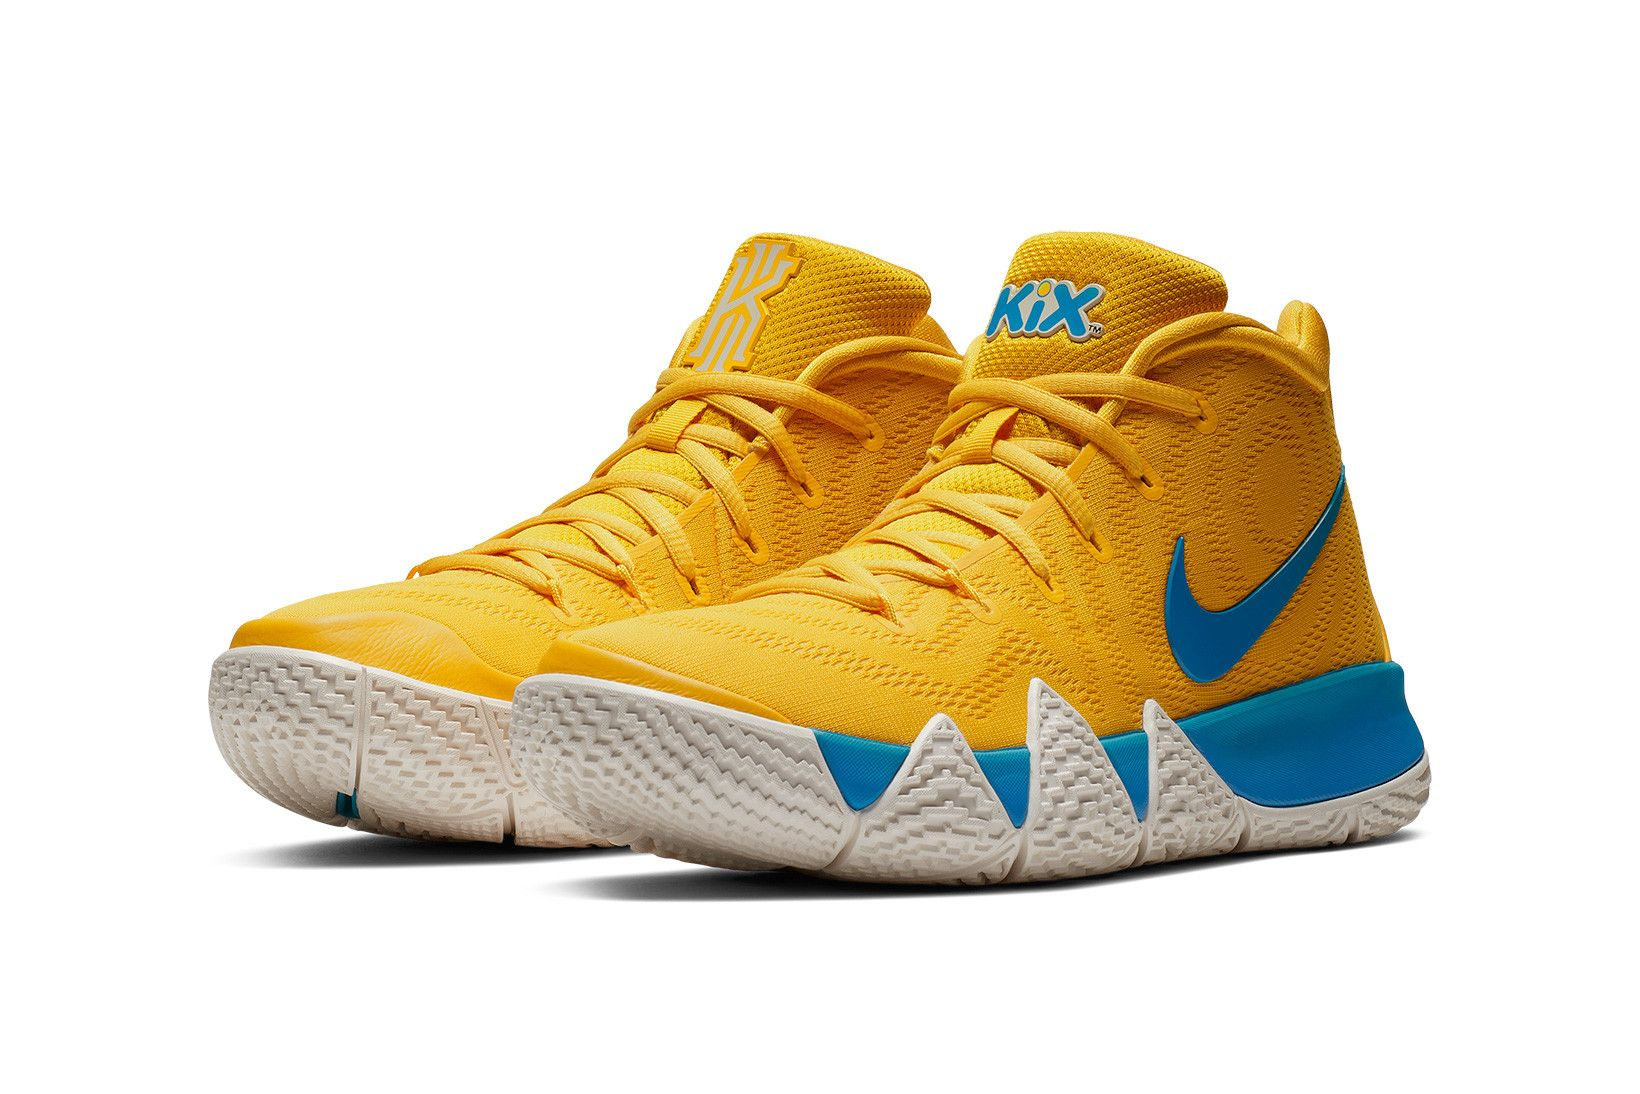 buy online fd128 59945 nike kyrie 4 cereal pack nike basketball kyrie irving 2018 august cinnamon  toast crunch kix lucky charms